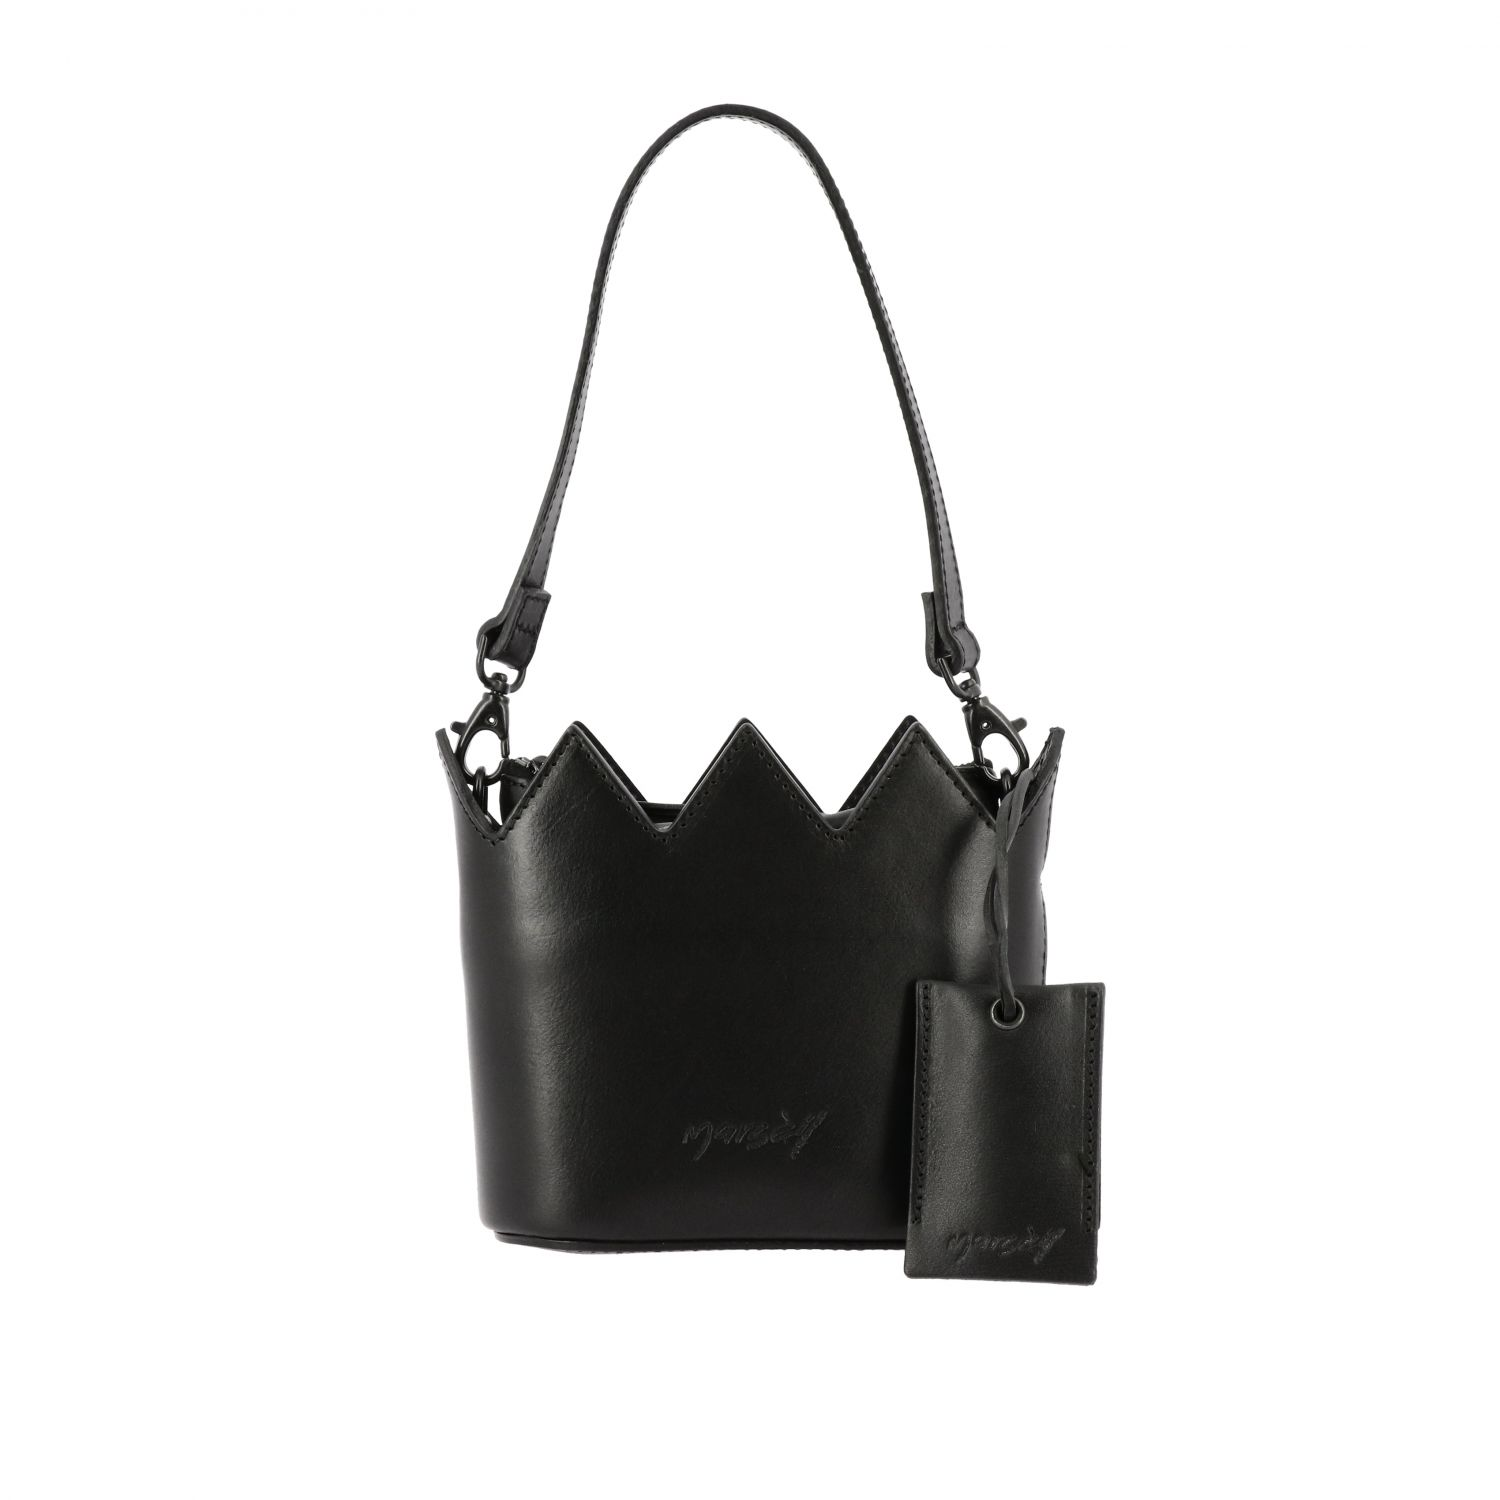 Marsell Mini Corona leather bag with shoulder strap black 1